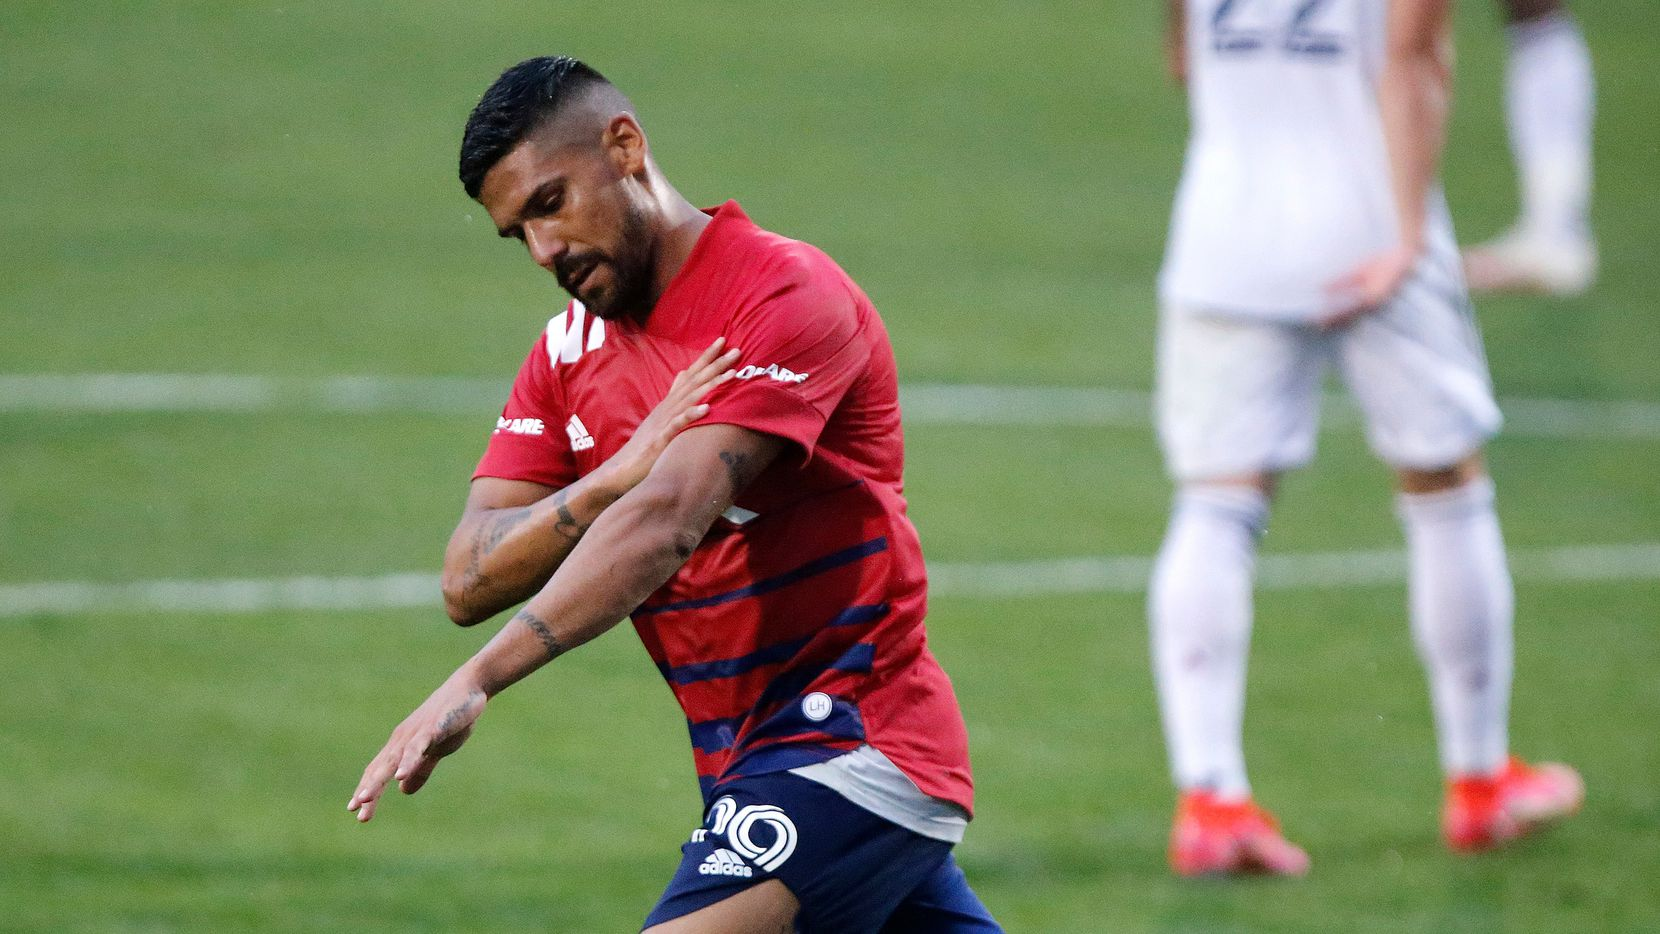 FC Dallas forward Franco Jara (29) brushes himself off after scoring a goal on a penalty kick to tie the game during the first half as FC Dallas hosted Real Salt Lake at Toyota Stadium in Frisco on Saturday, May 22, 2021. (Stewart F. House/Special Contributor)